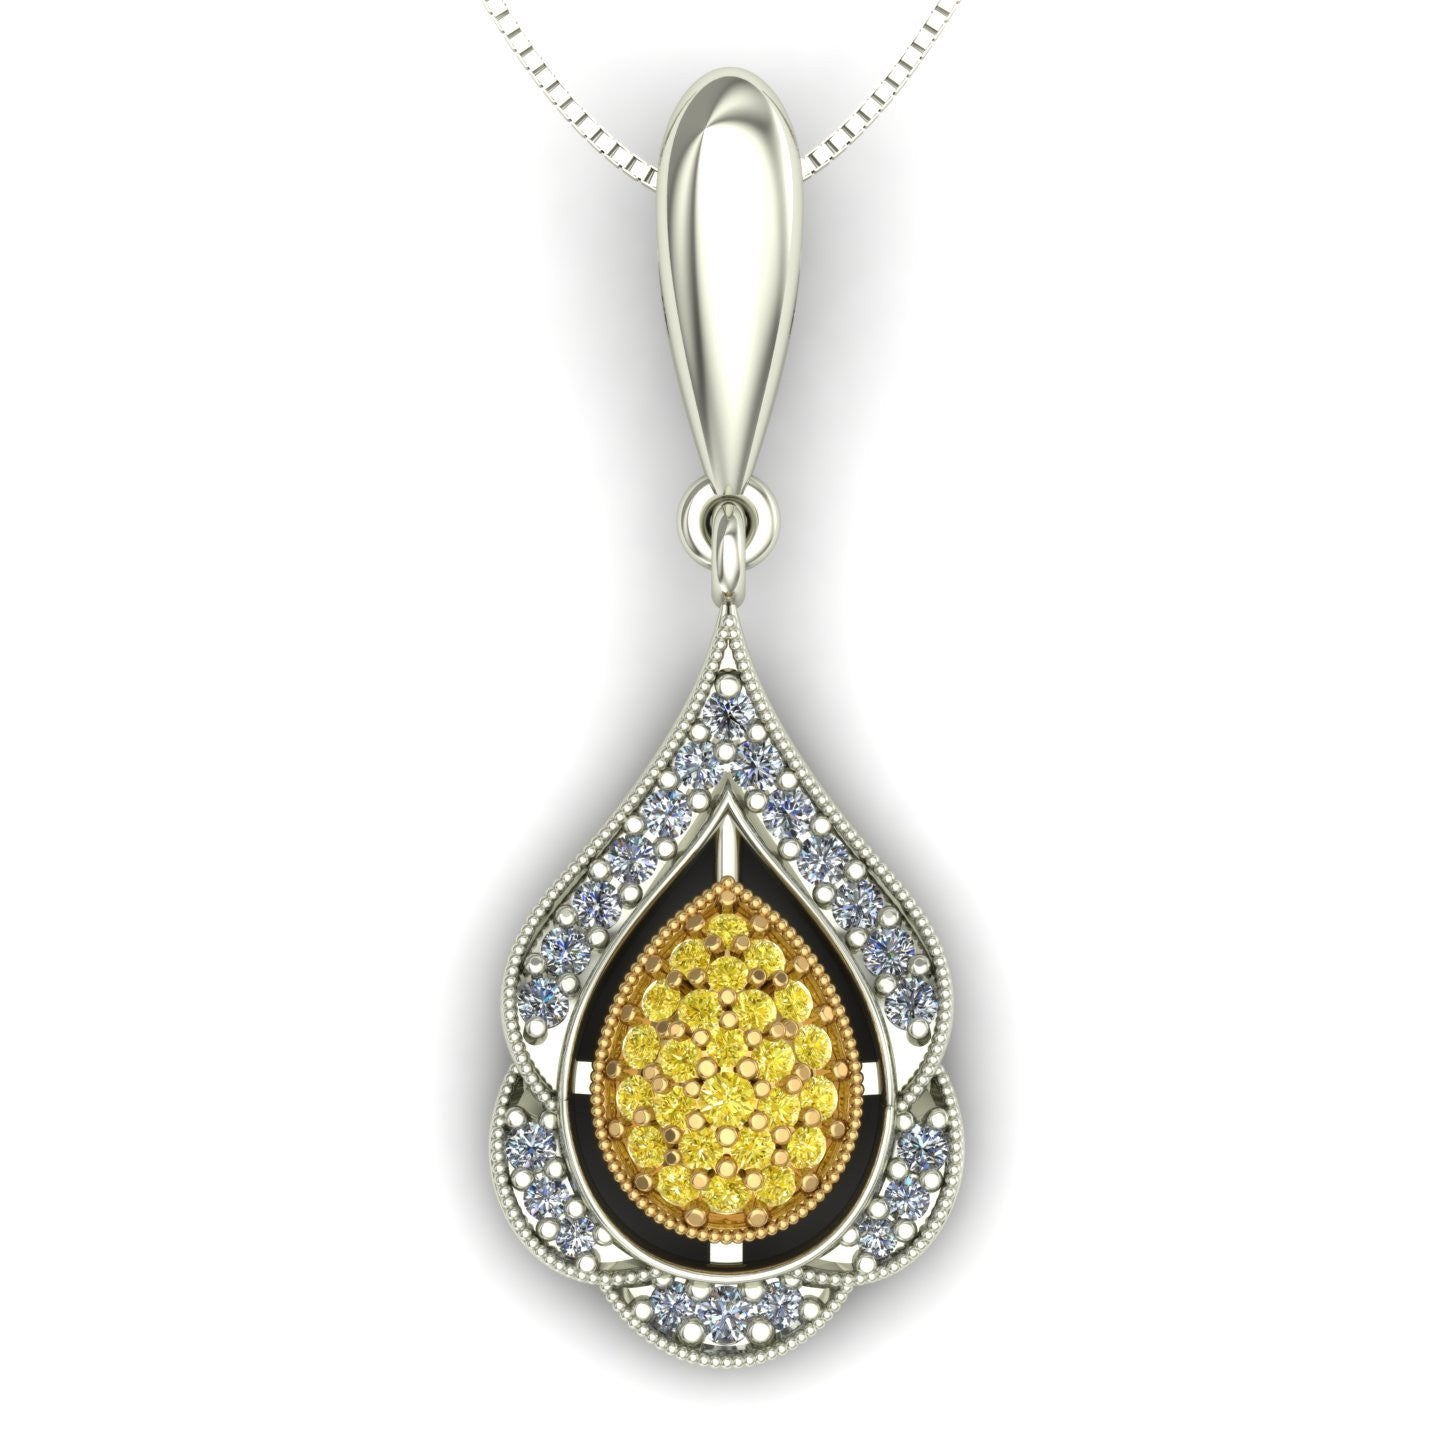 Yellow diamond pavé pendant in 14k yellow and white gold